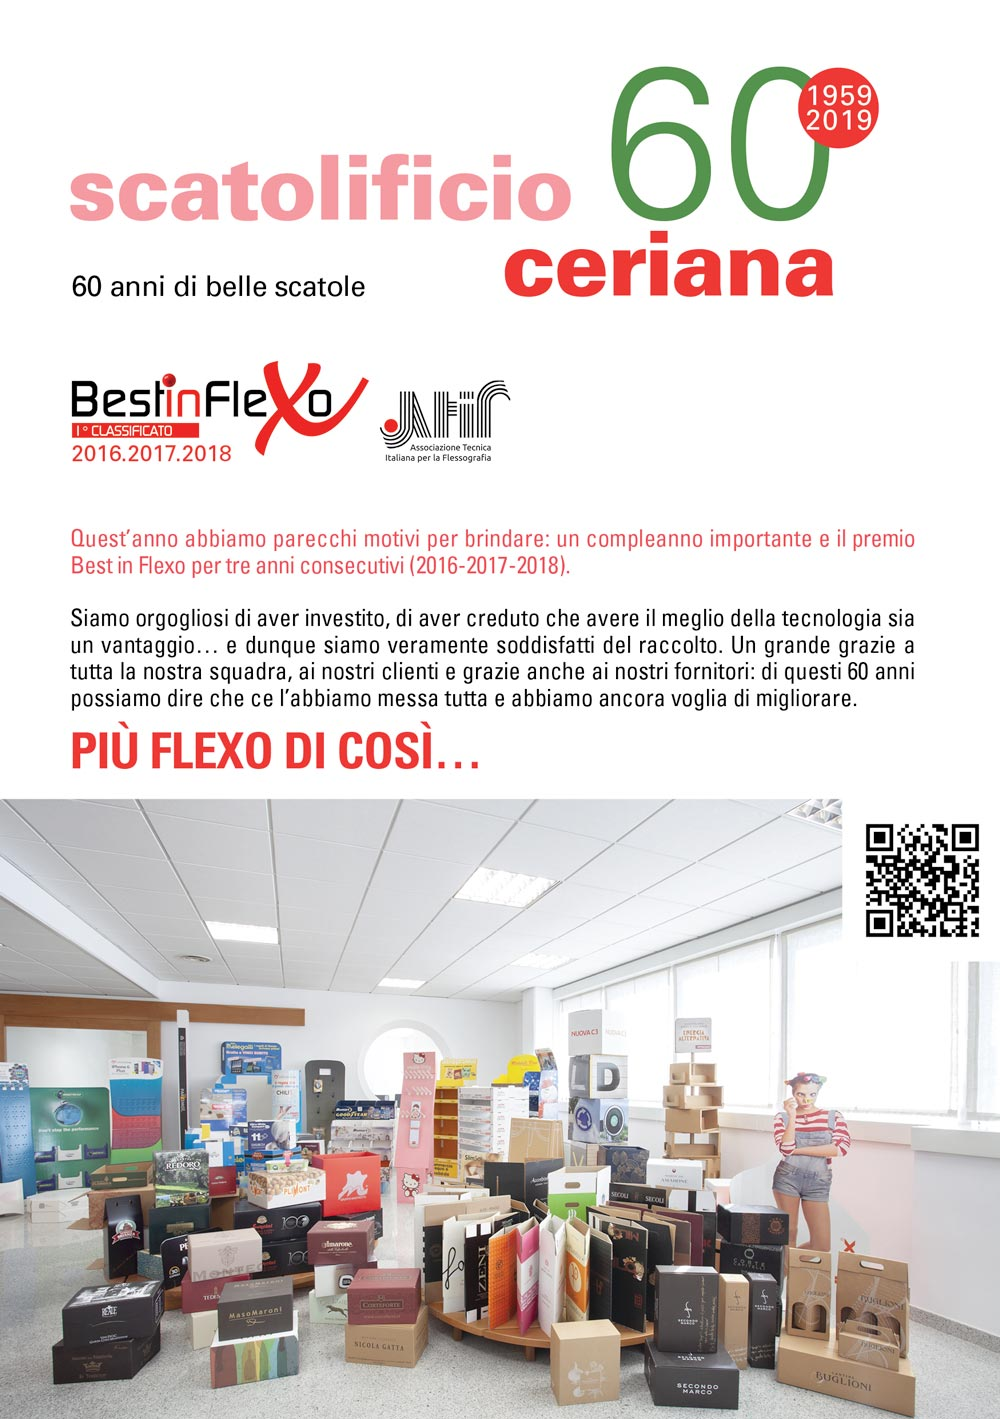 Best Flexo Ceriana